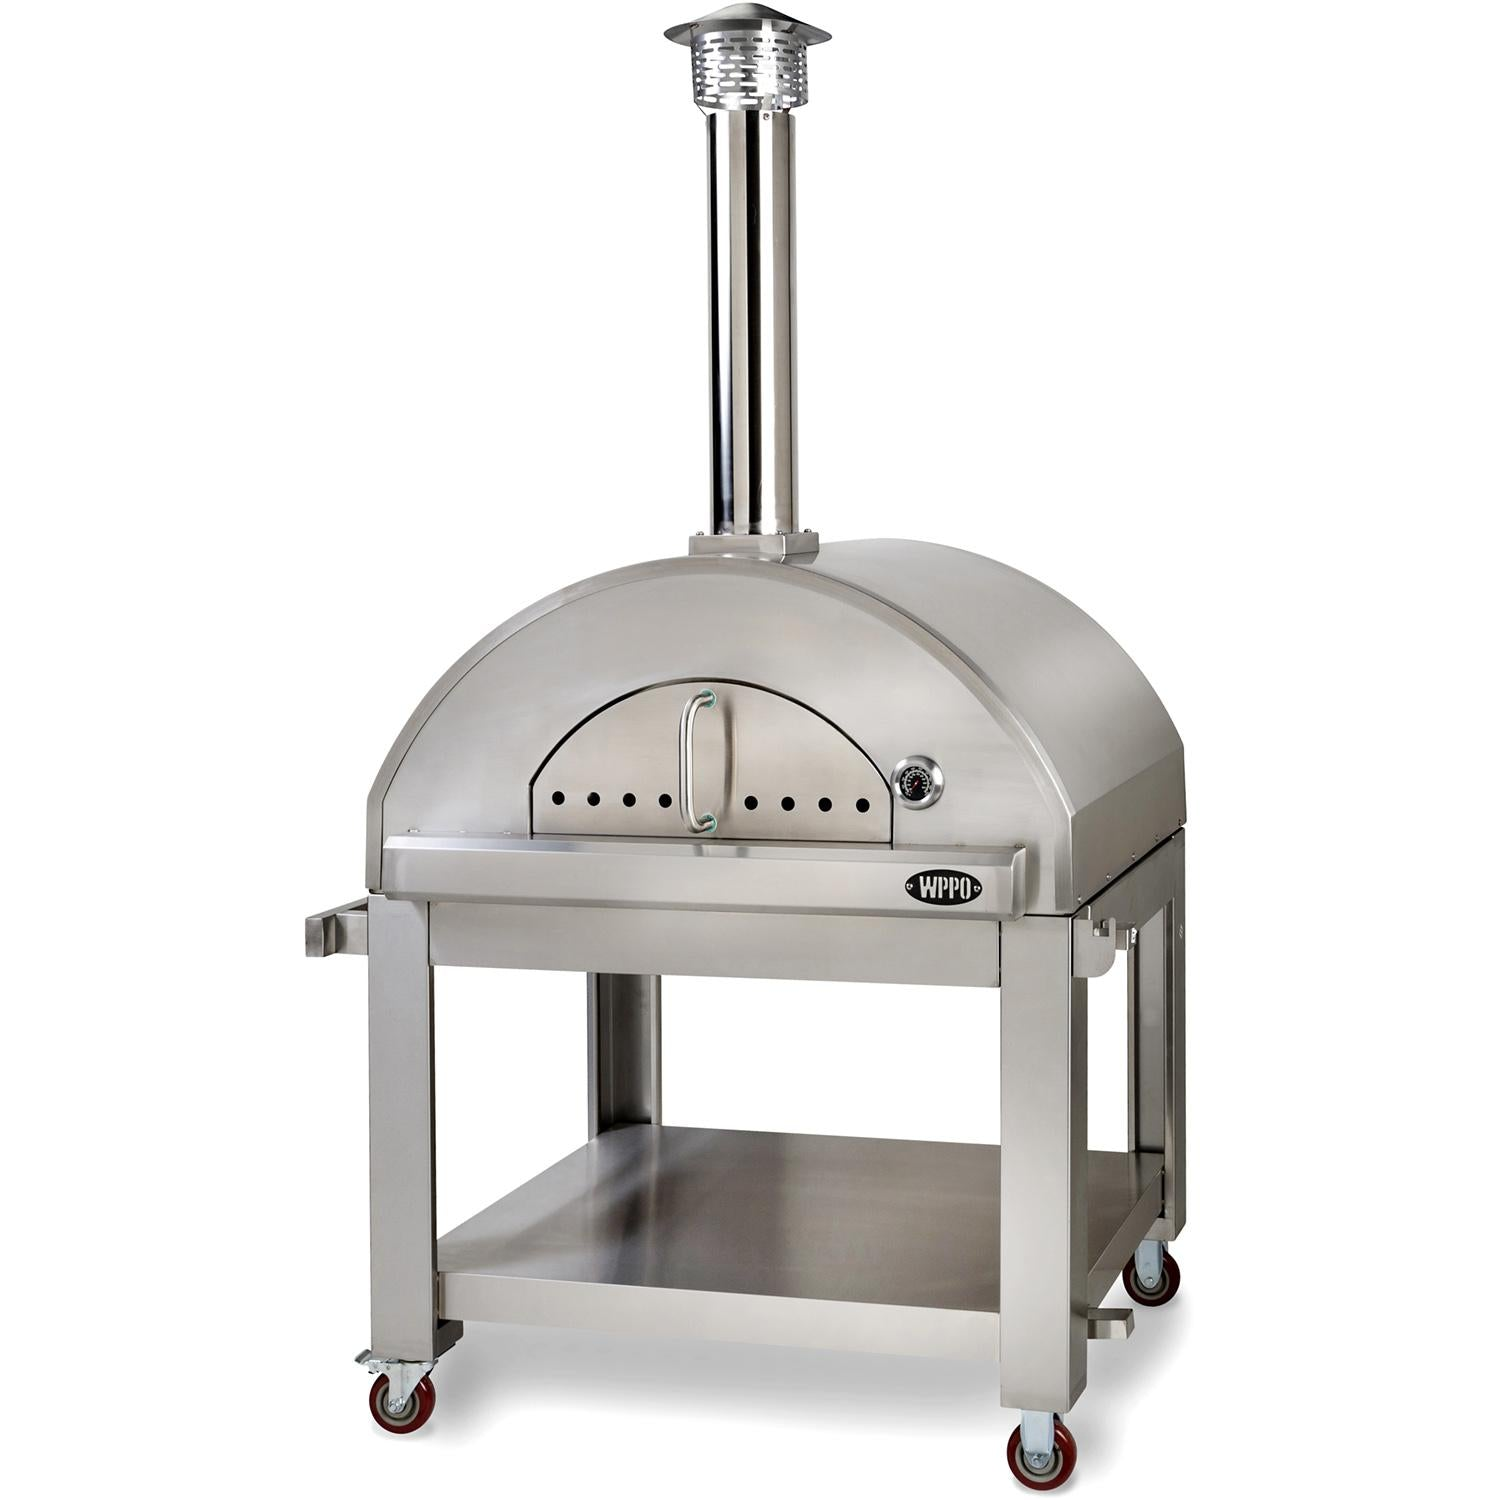 WPPO Pro 3 42-Inch Outdoor Wood-Fired Pizza Oven On Cart - WPPO3 + WPPO3STND - Smoker Guru